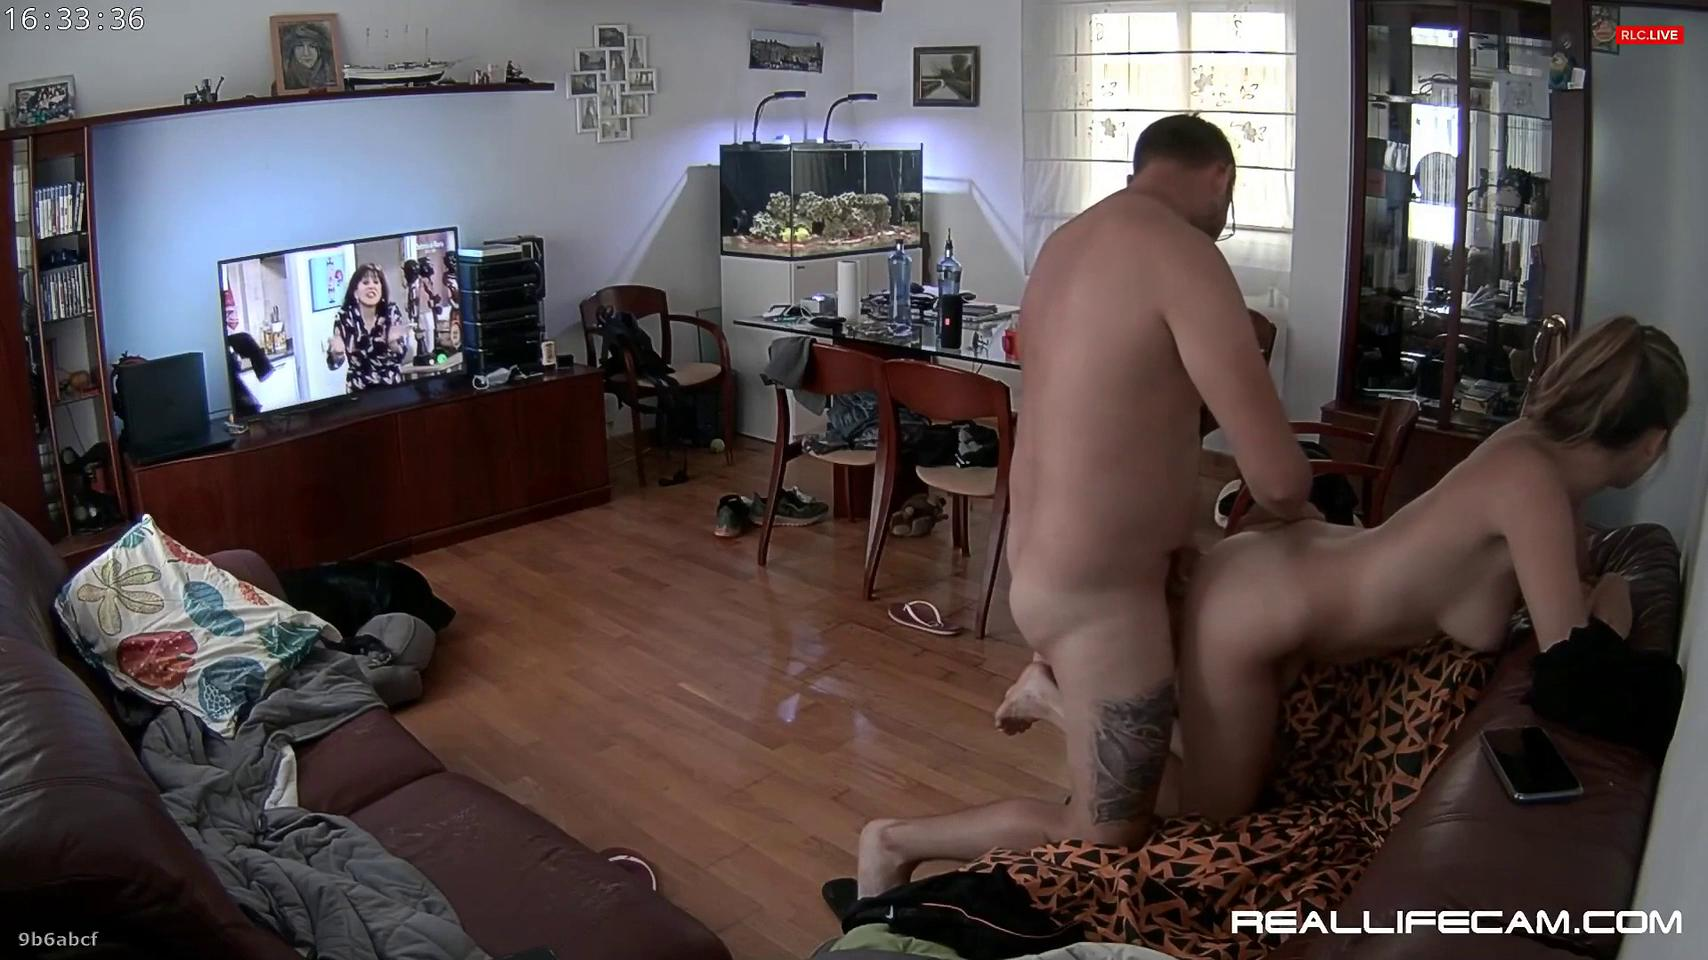 Reallifecam Alberto and Martin have sex on the couch and are interrupted by Martinas phone ringing 13 09 2021